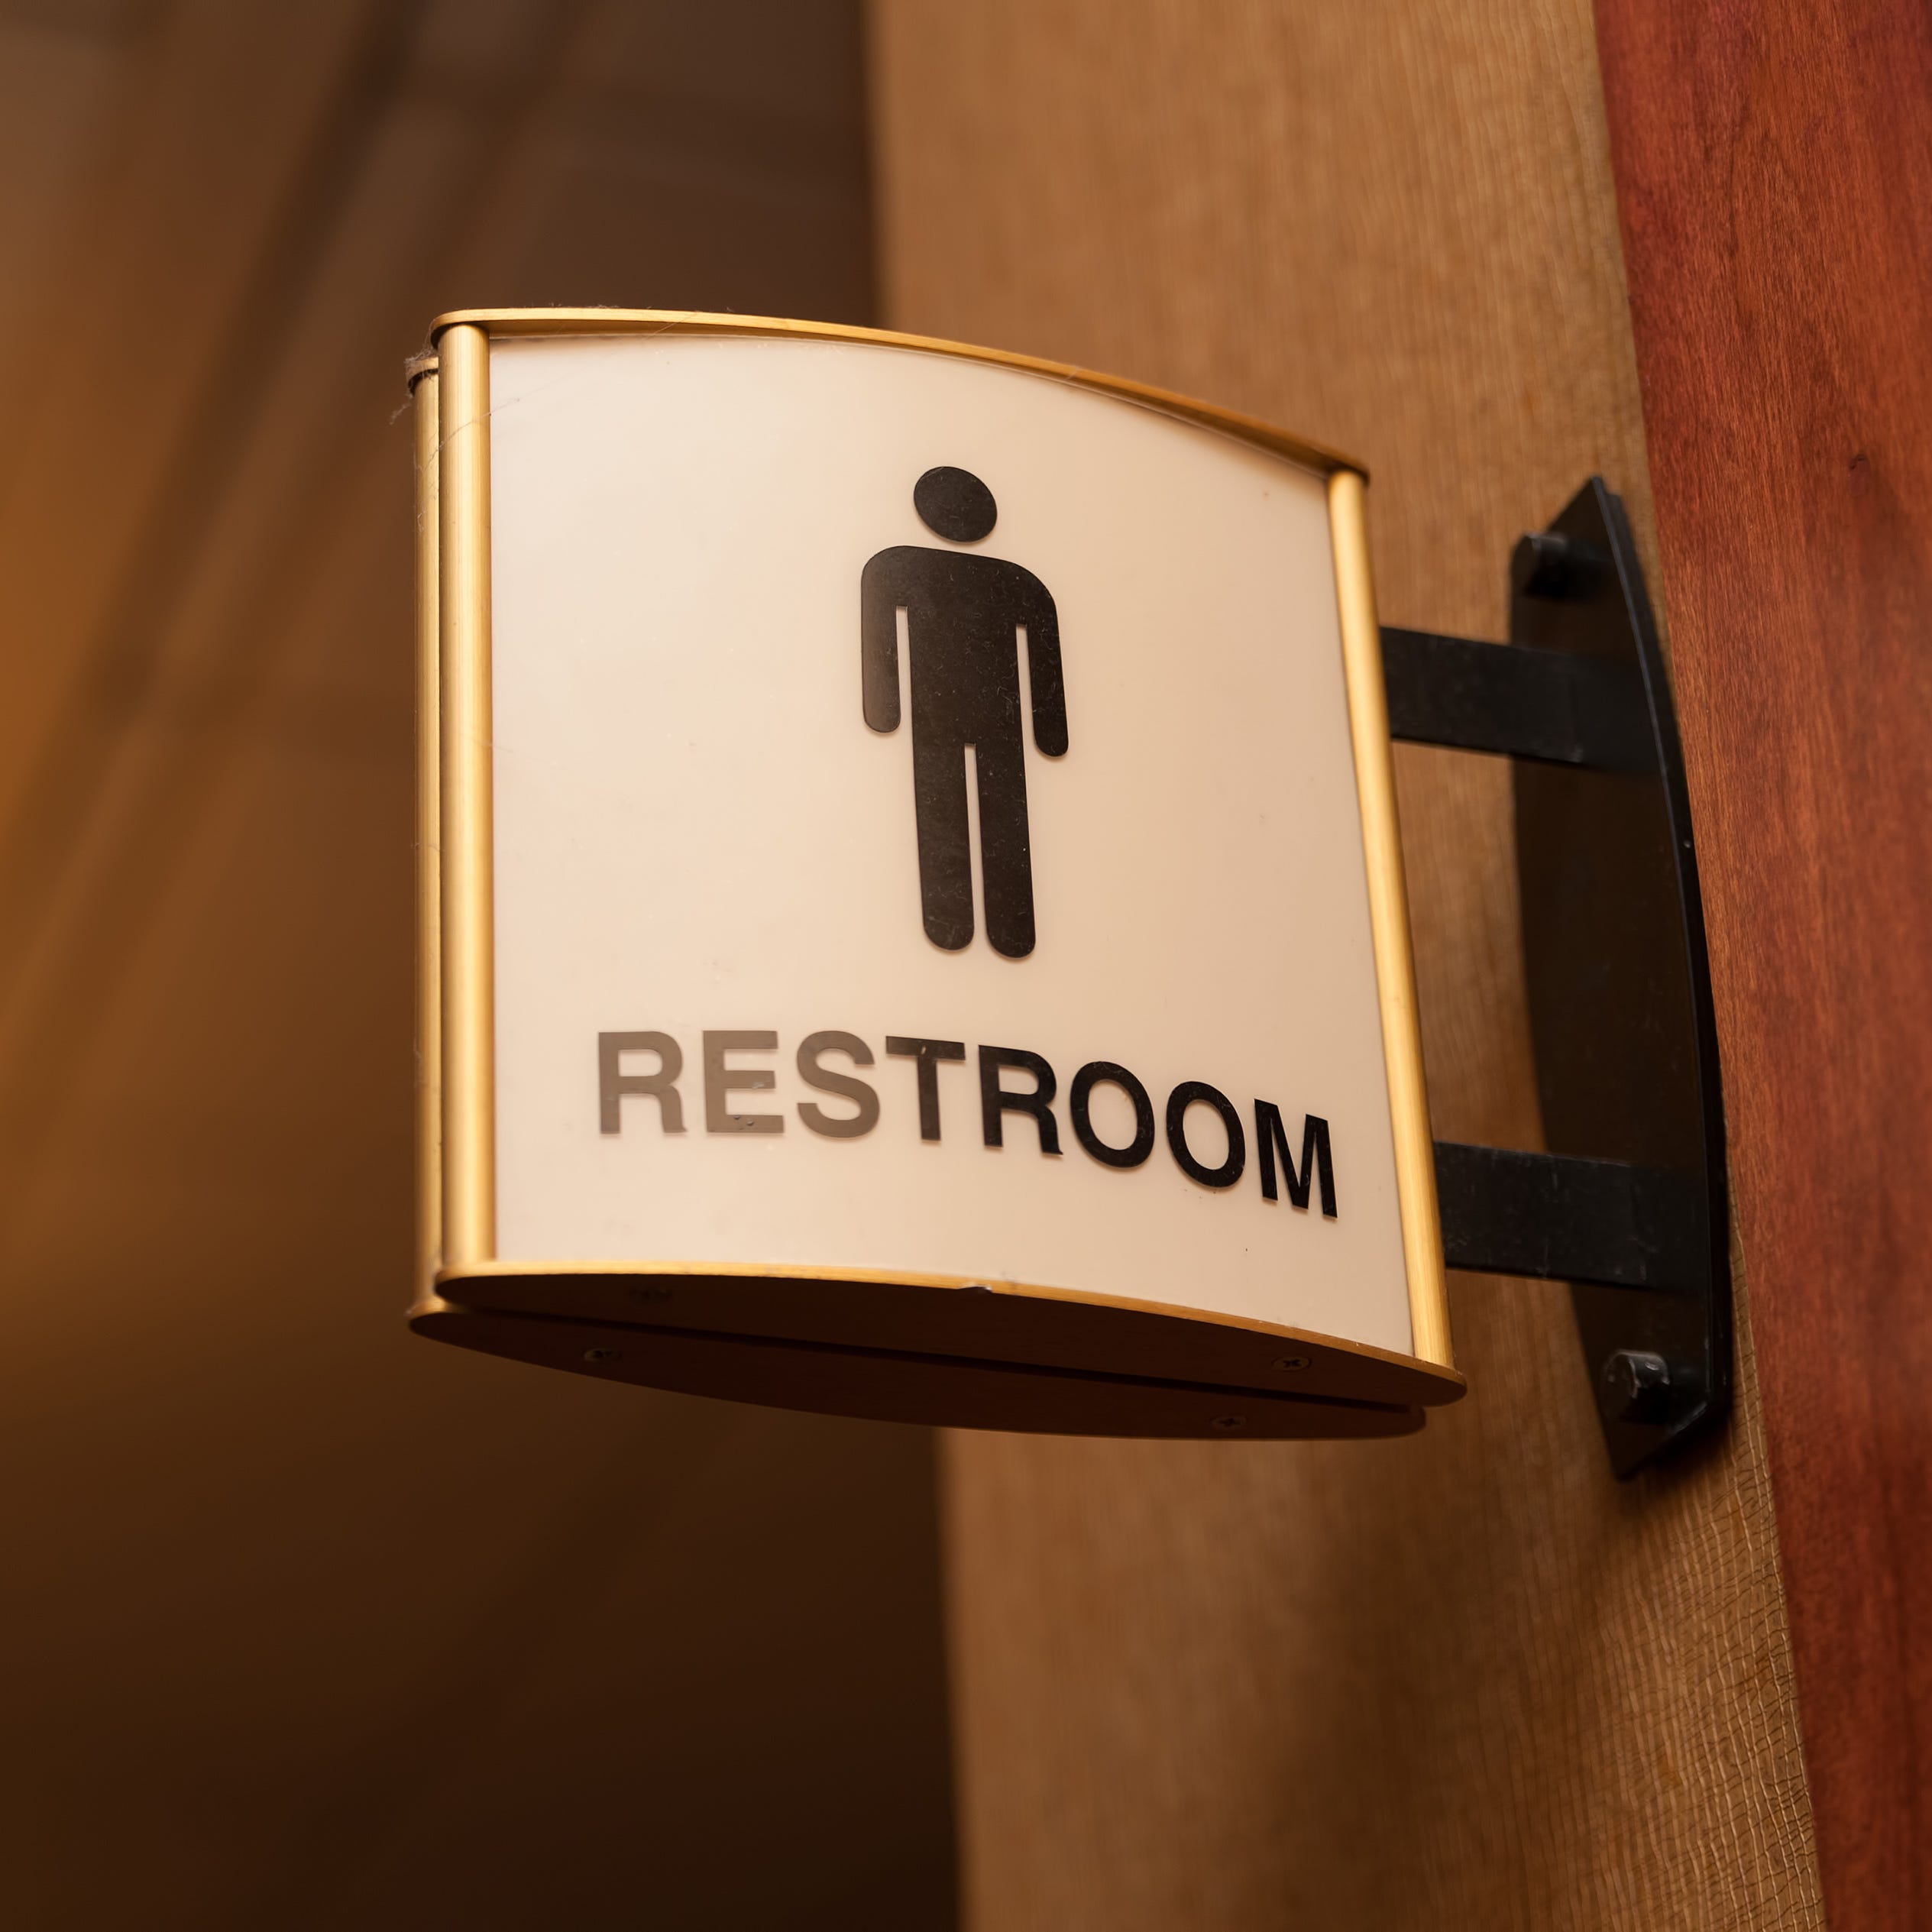 A West Virginia school board voted Tuesday night to suspend without pay through Feb. 1 an assistant principal who allegedly harassed a transgender student in a school restroom.